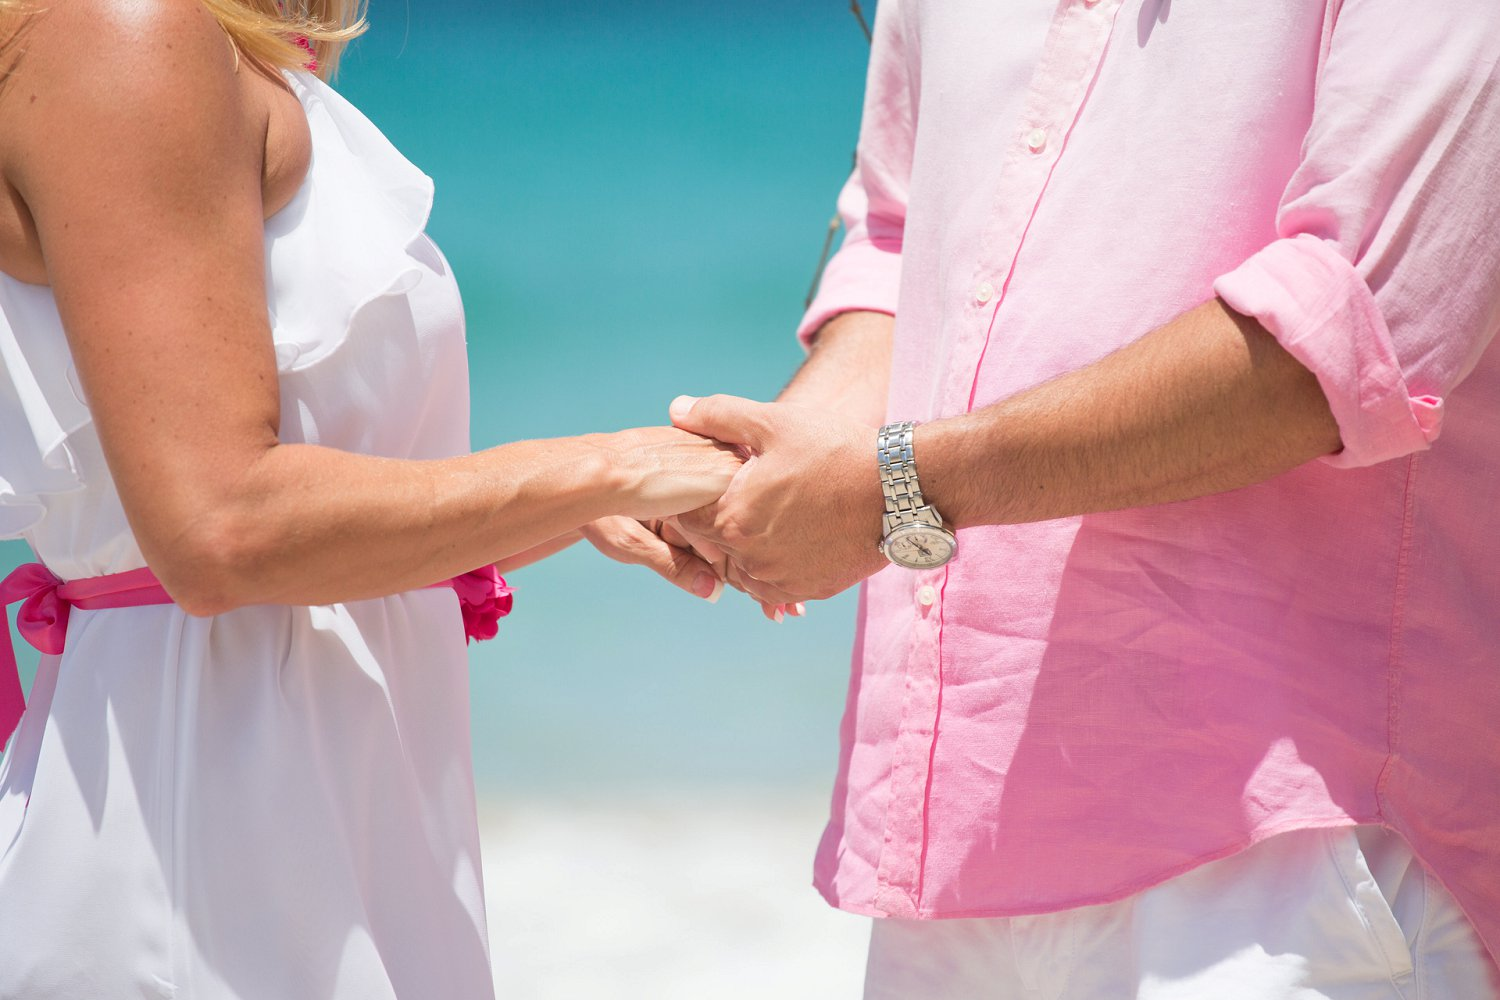 Exchanging rings at destination vow renewal.